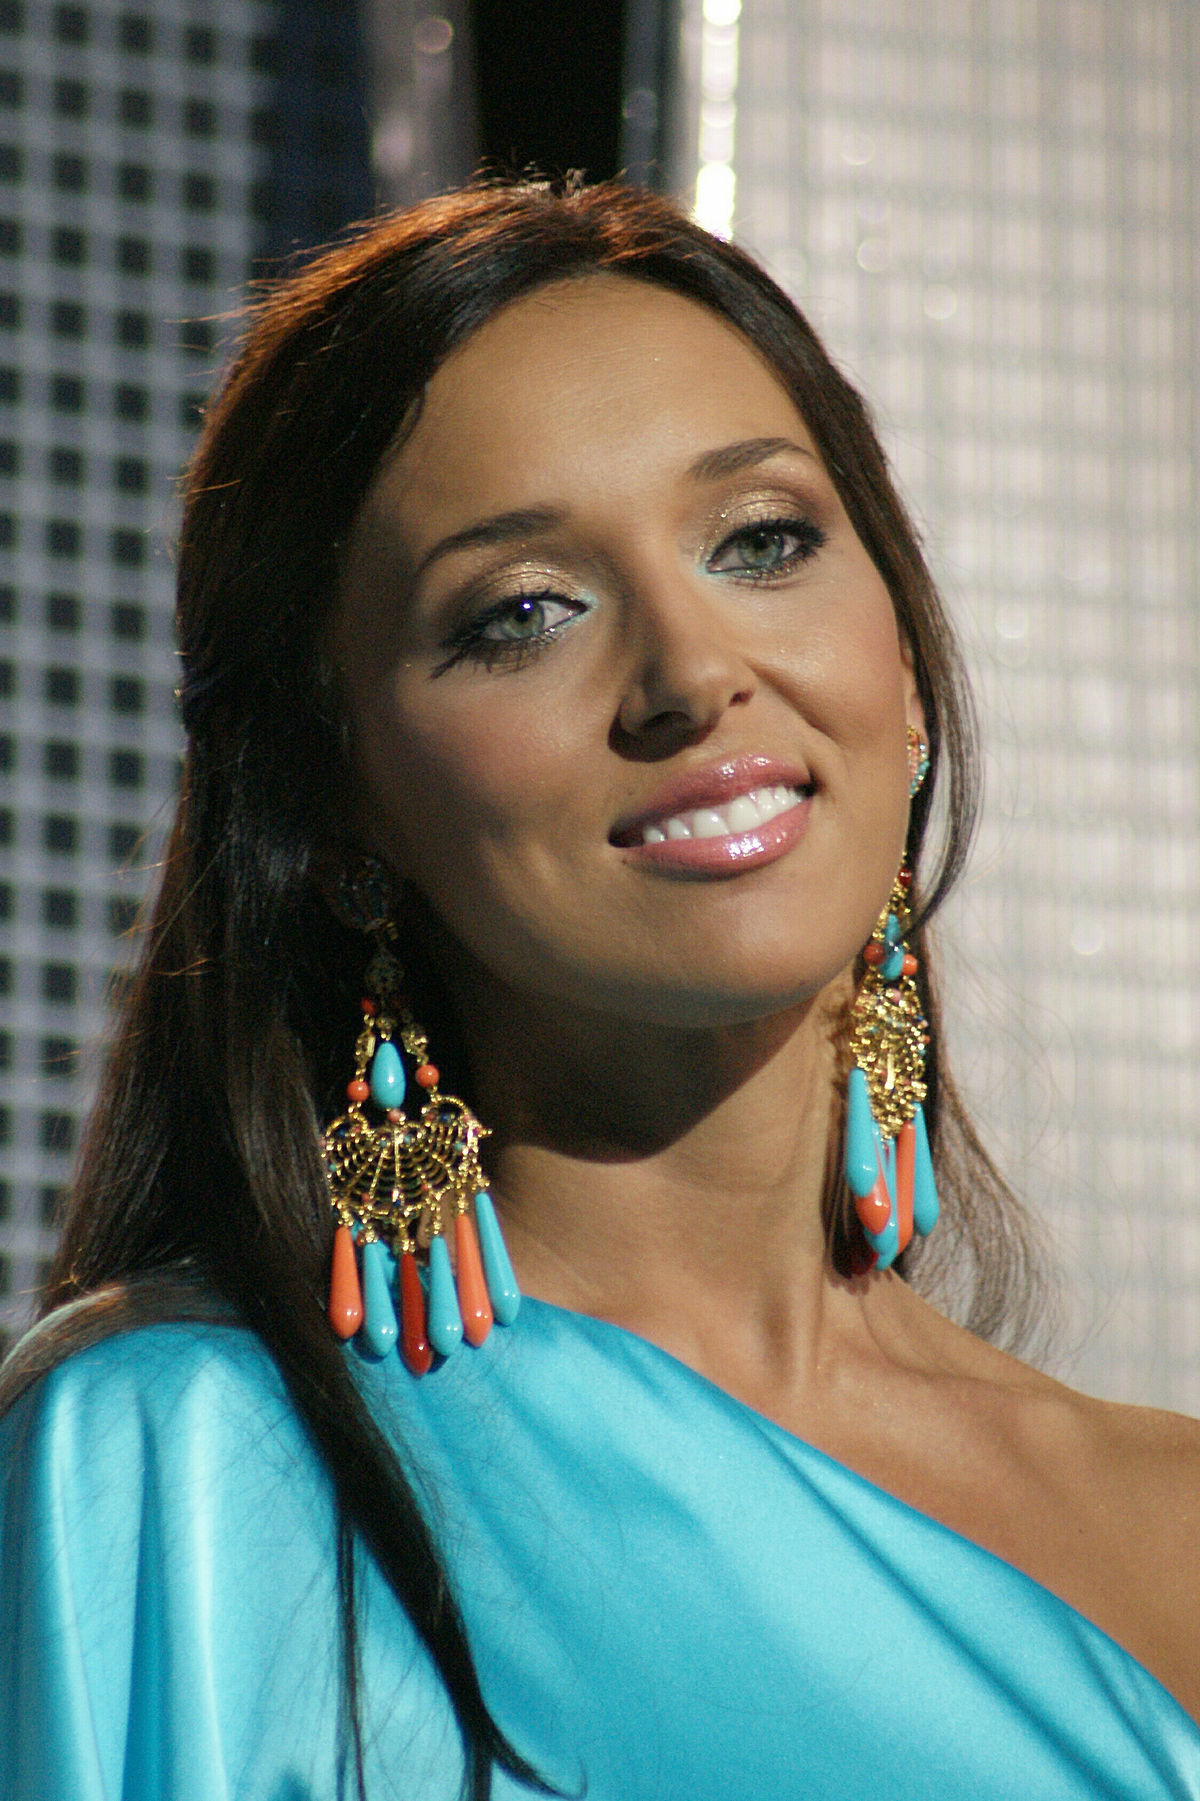 Alsou went to have a third child for 1 million rubles